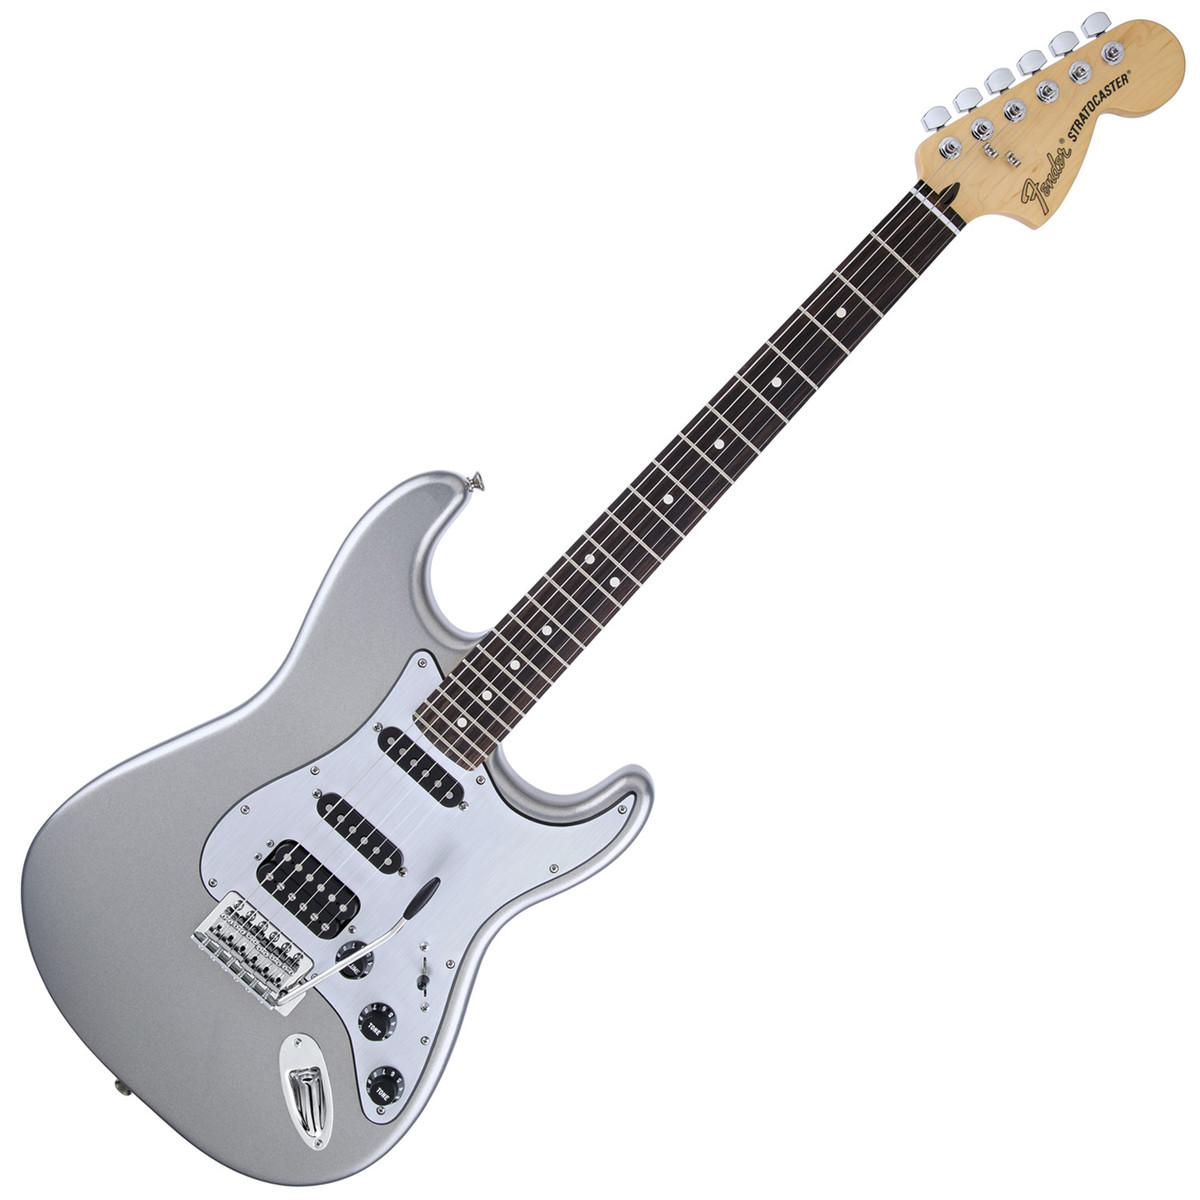 fender limited edition lone star strat rw ghost silver at gear4music. Black Bedroom Furniture Sets. Home Design Ideas